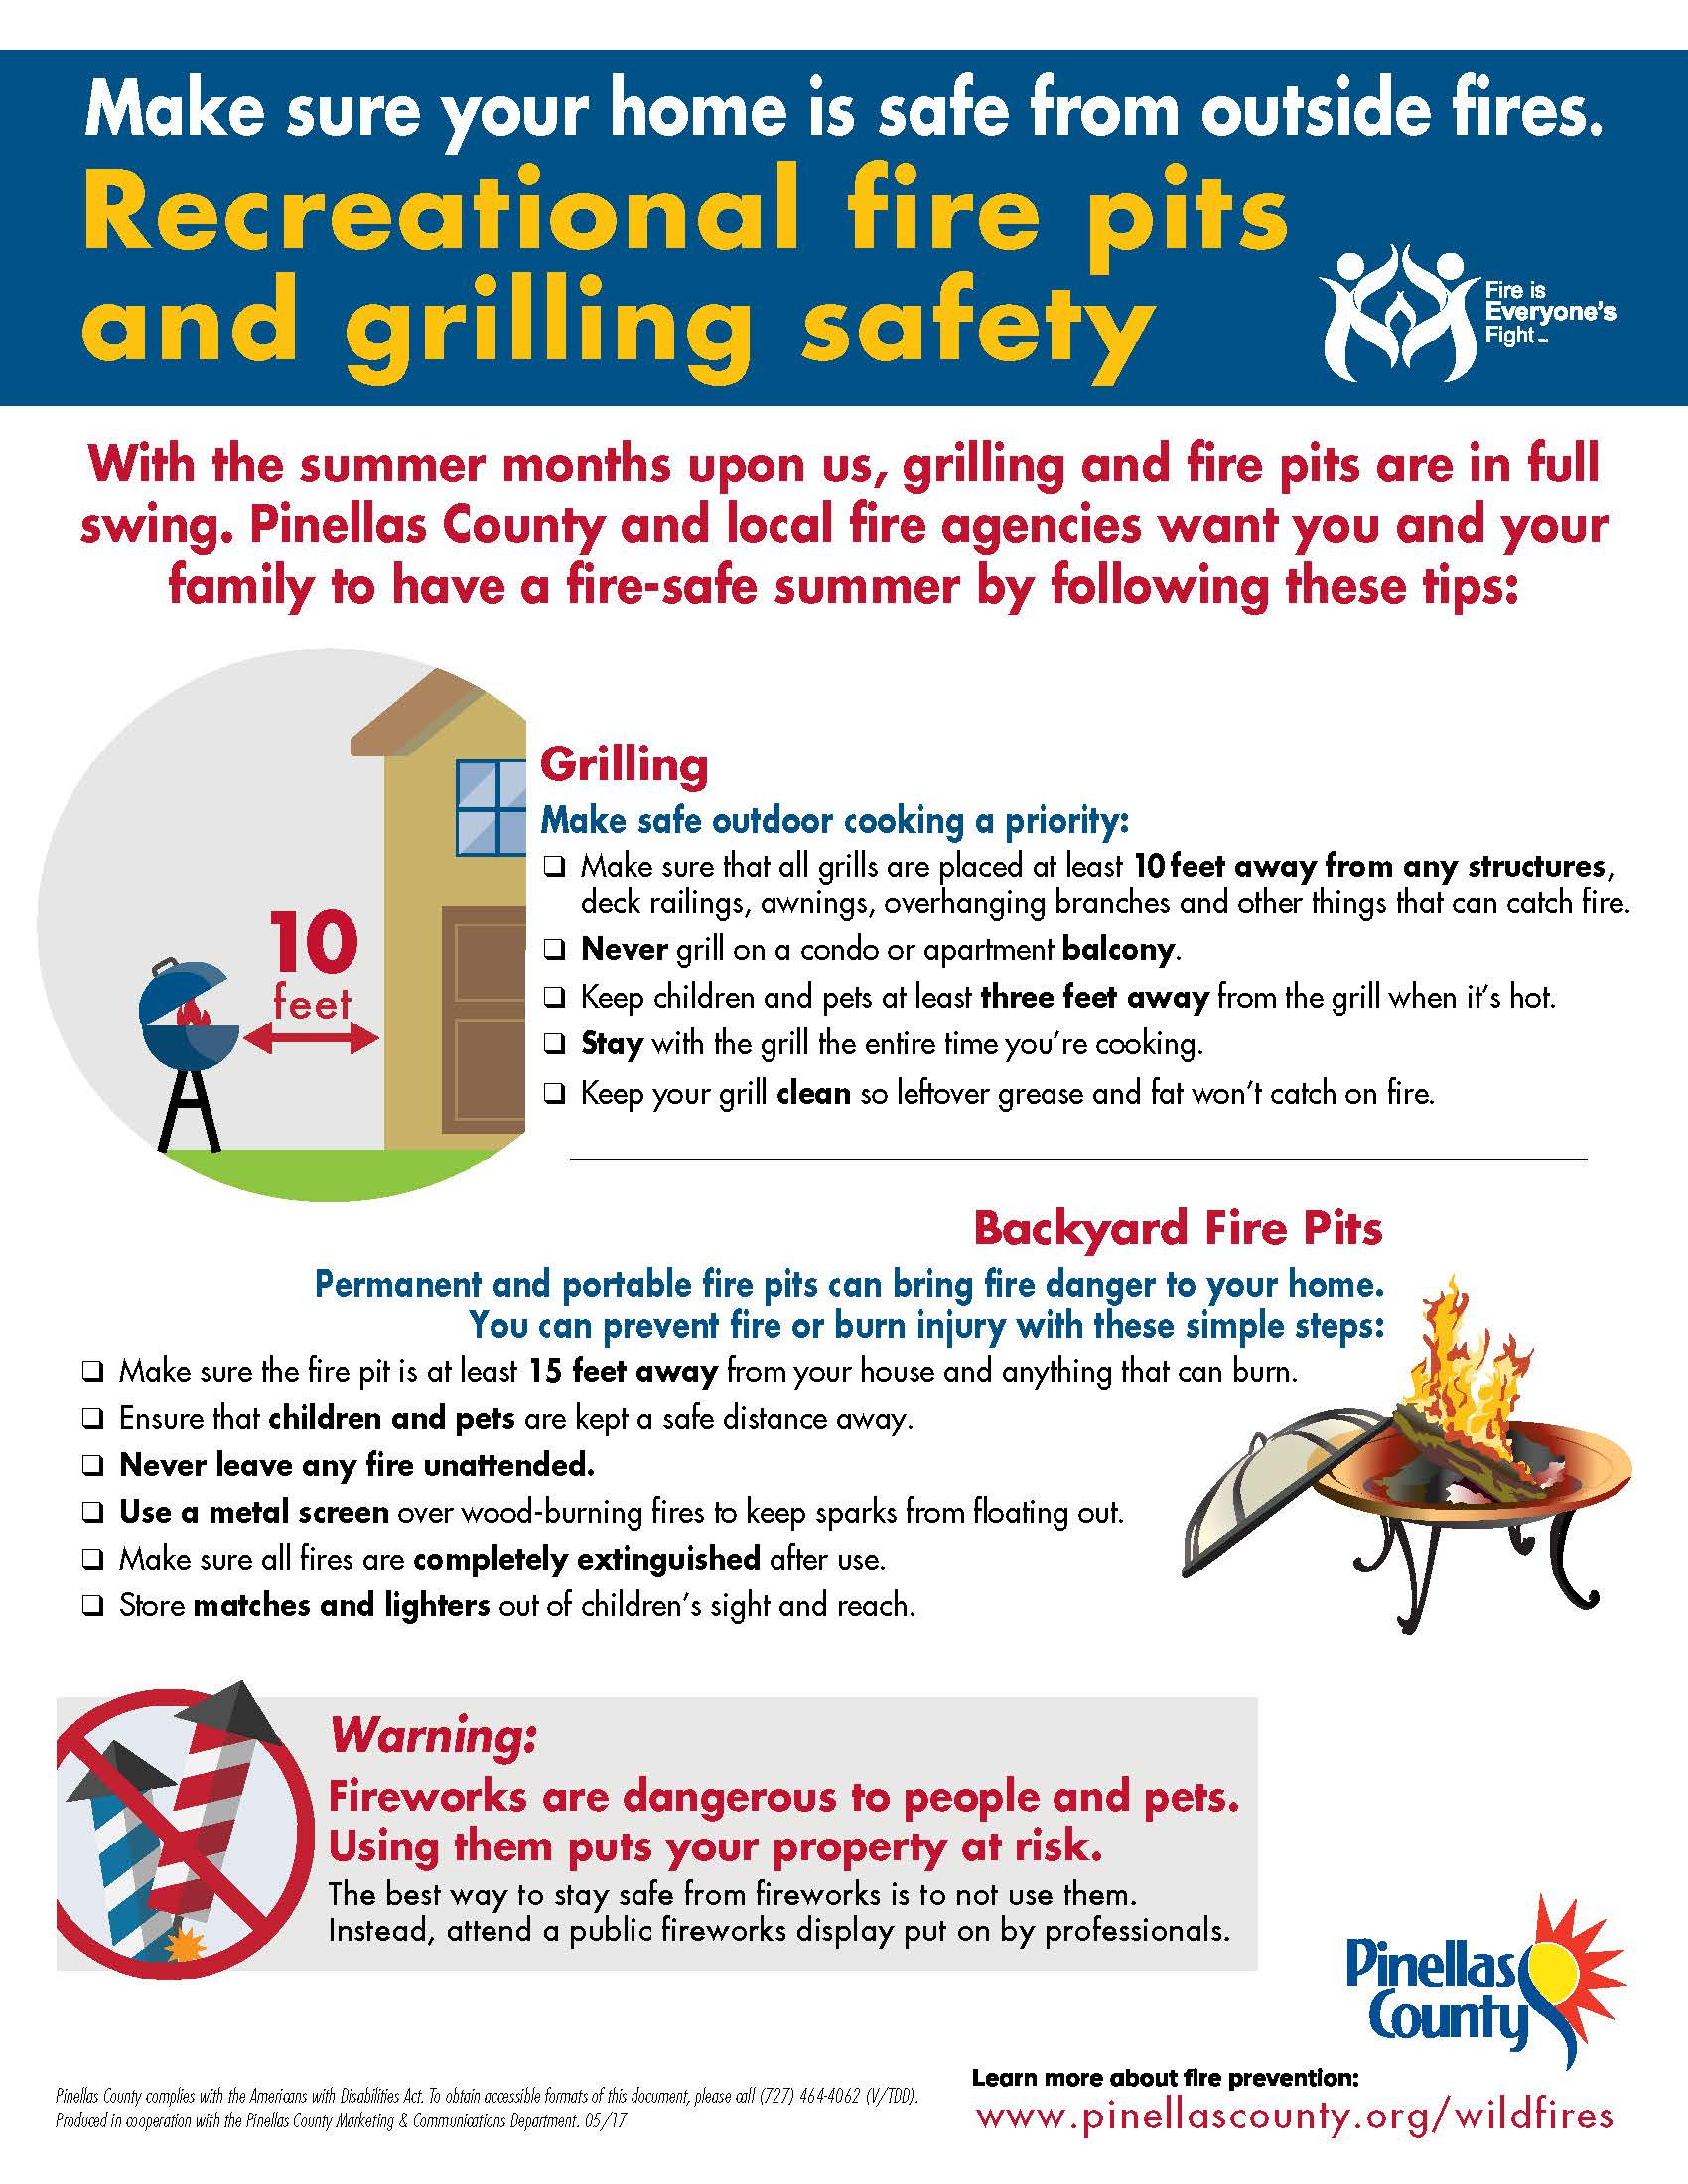 Pinellas_Outdoor Fire Safety